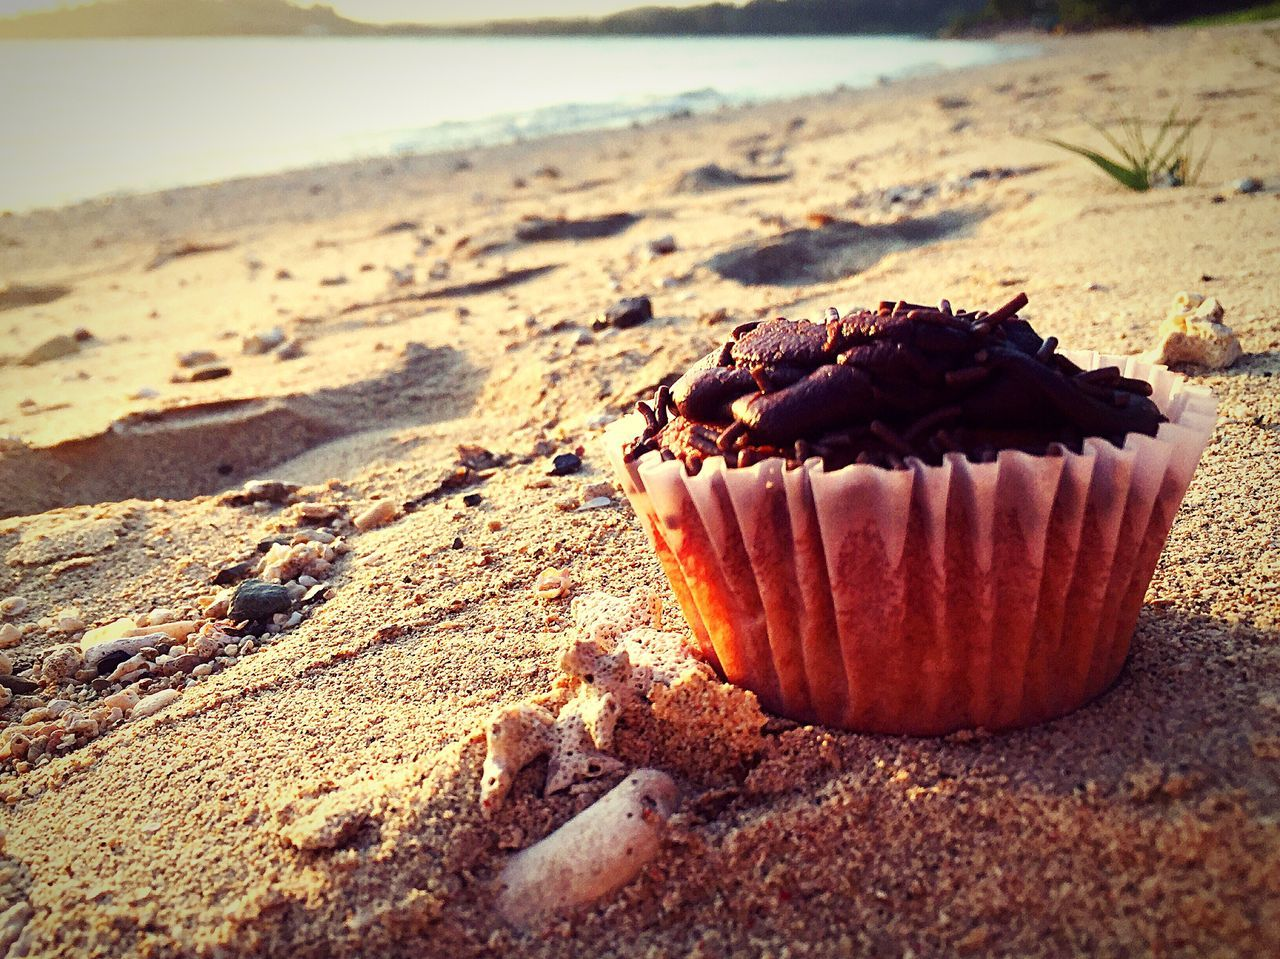 ShareTheMeal Outdoors Cupcake Colors Sweet Food Sharefood Share My Thoughts One Cupcake Loner BeachbumClose-up Food Sea Ready-to-eat Food And Drink